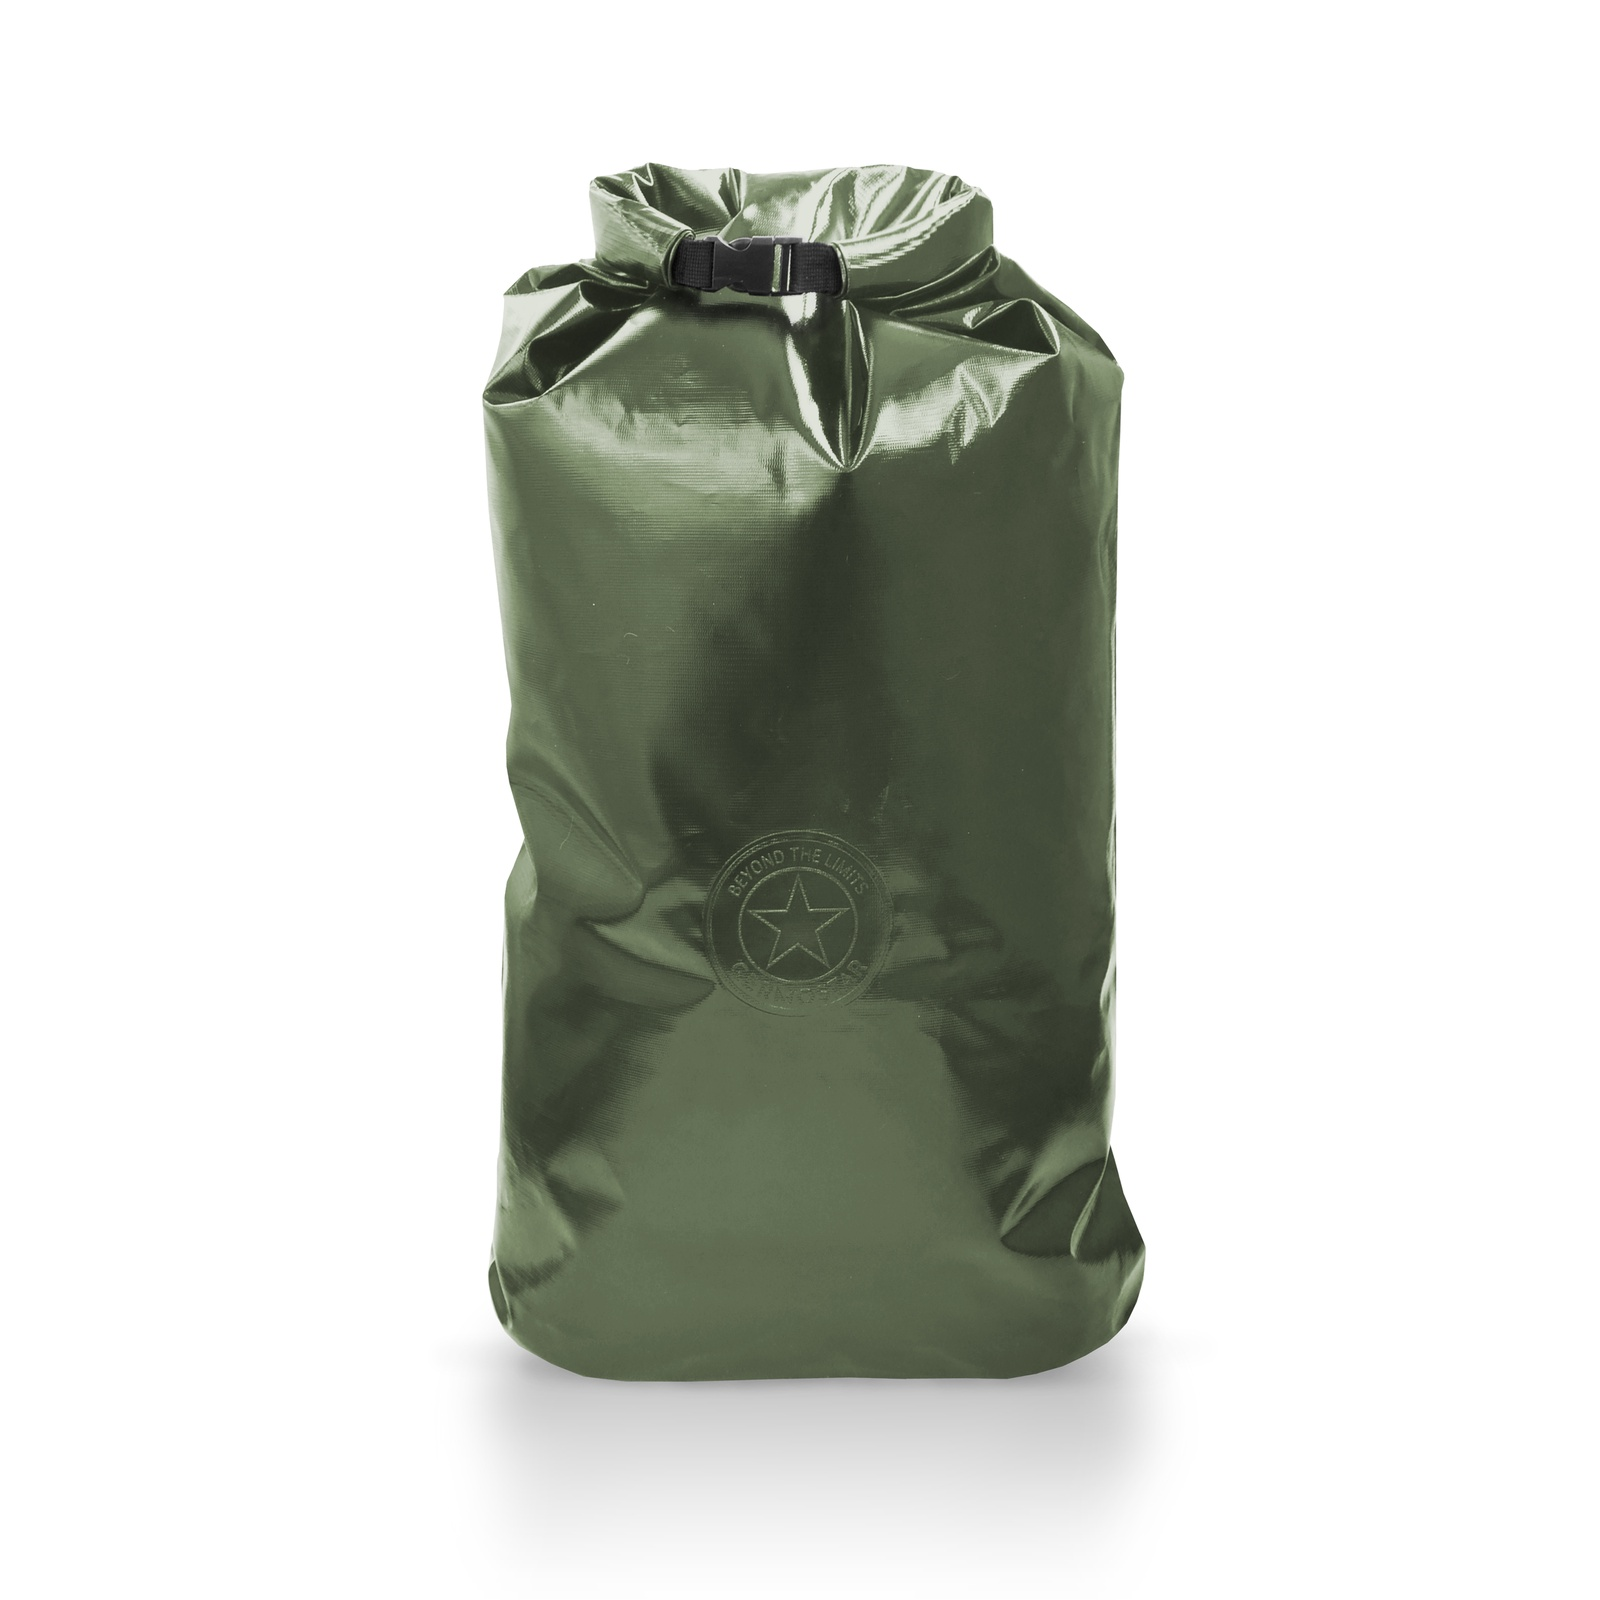 Герморюкзак DRY BAG Standart 100л, хаки waterproof dry bag for kayaking outdoor camping rafting green